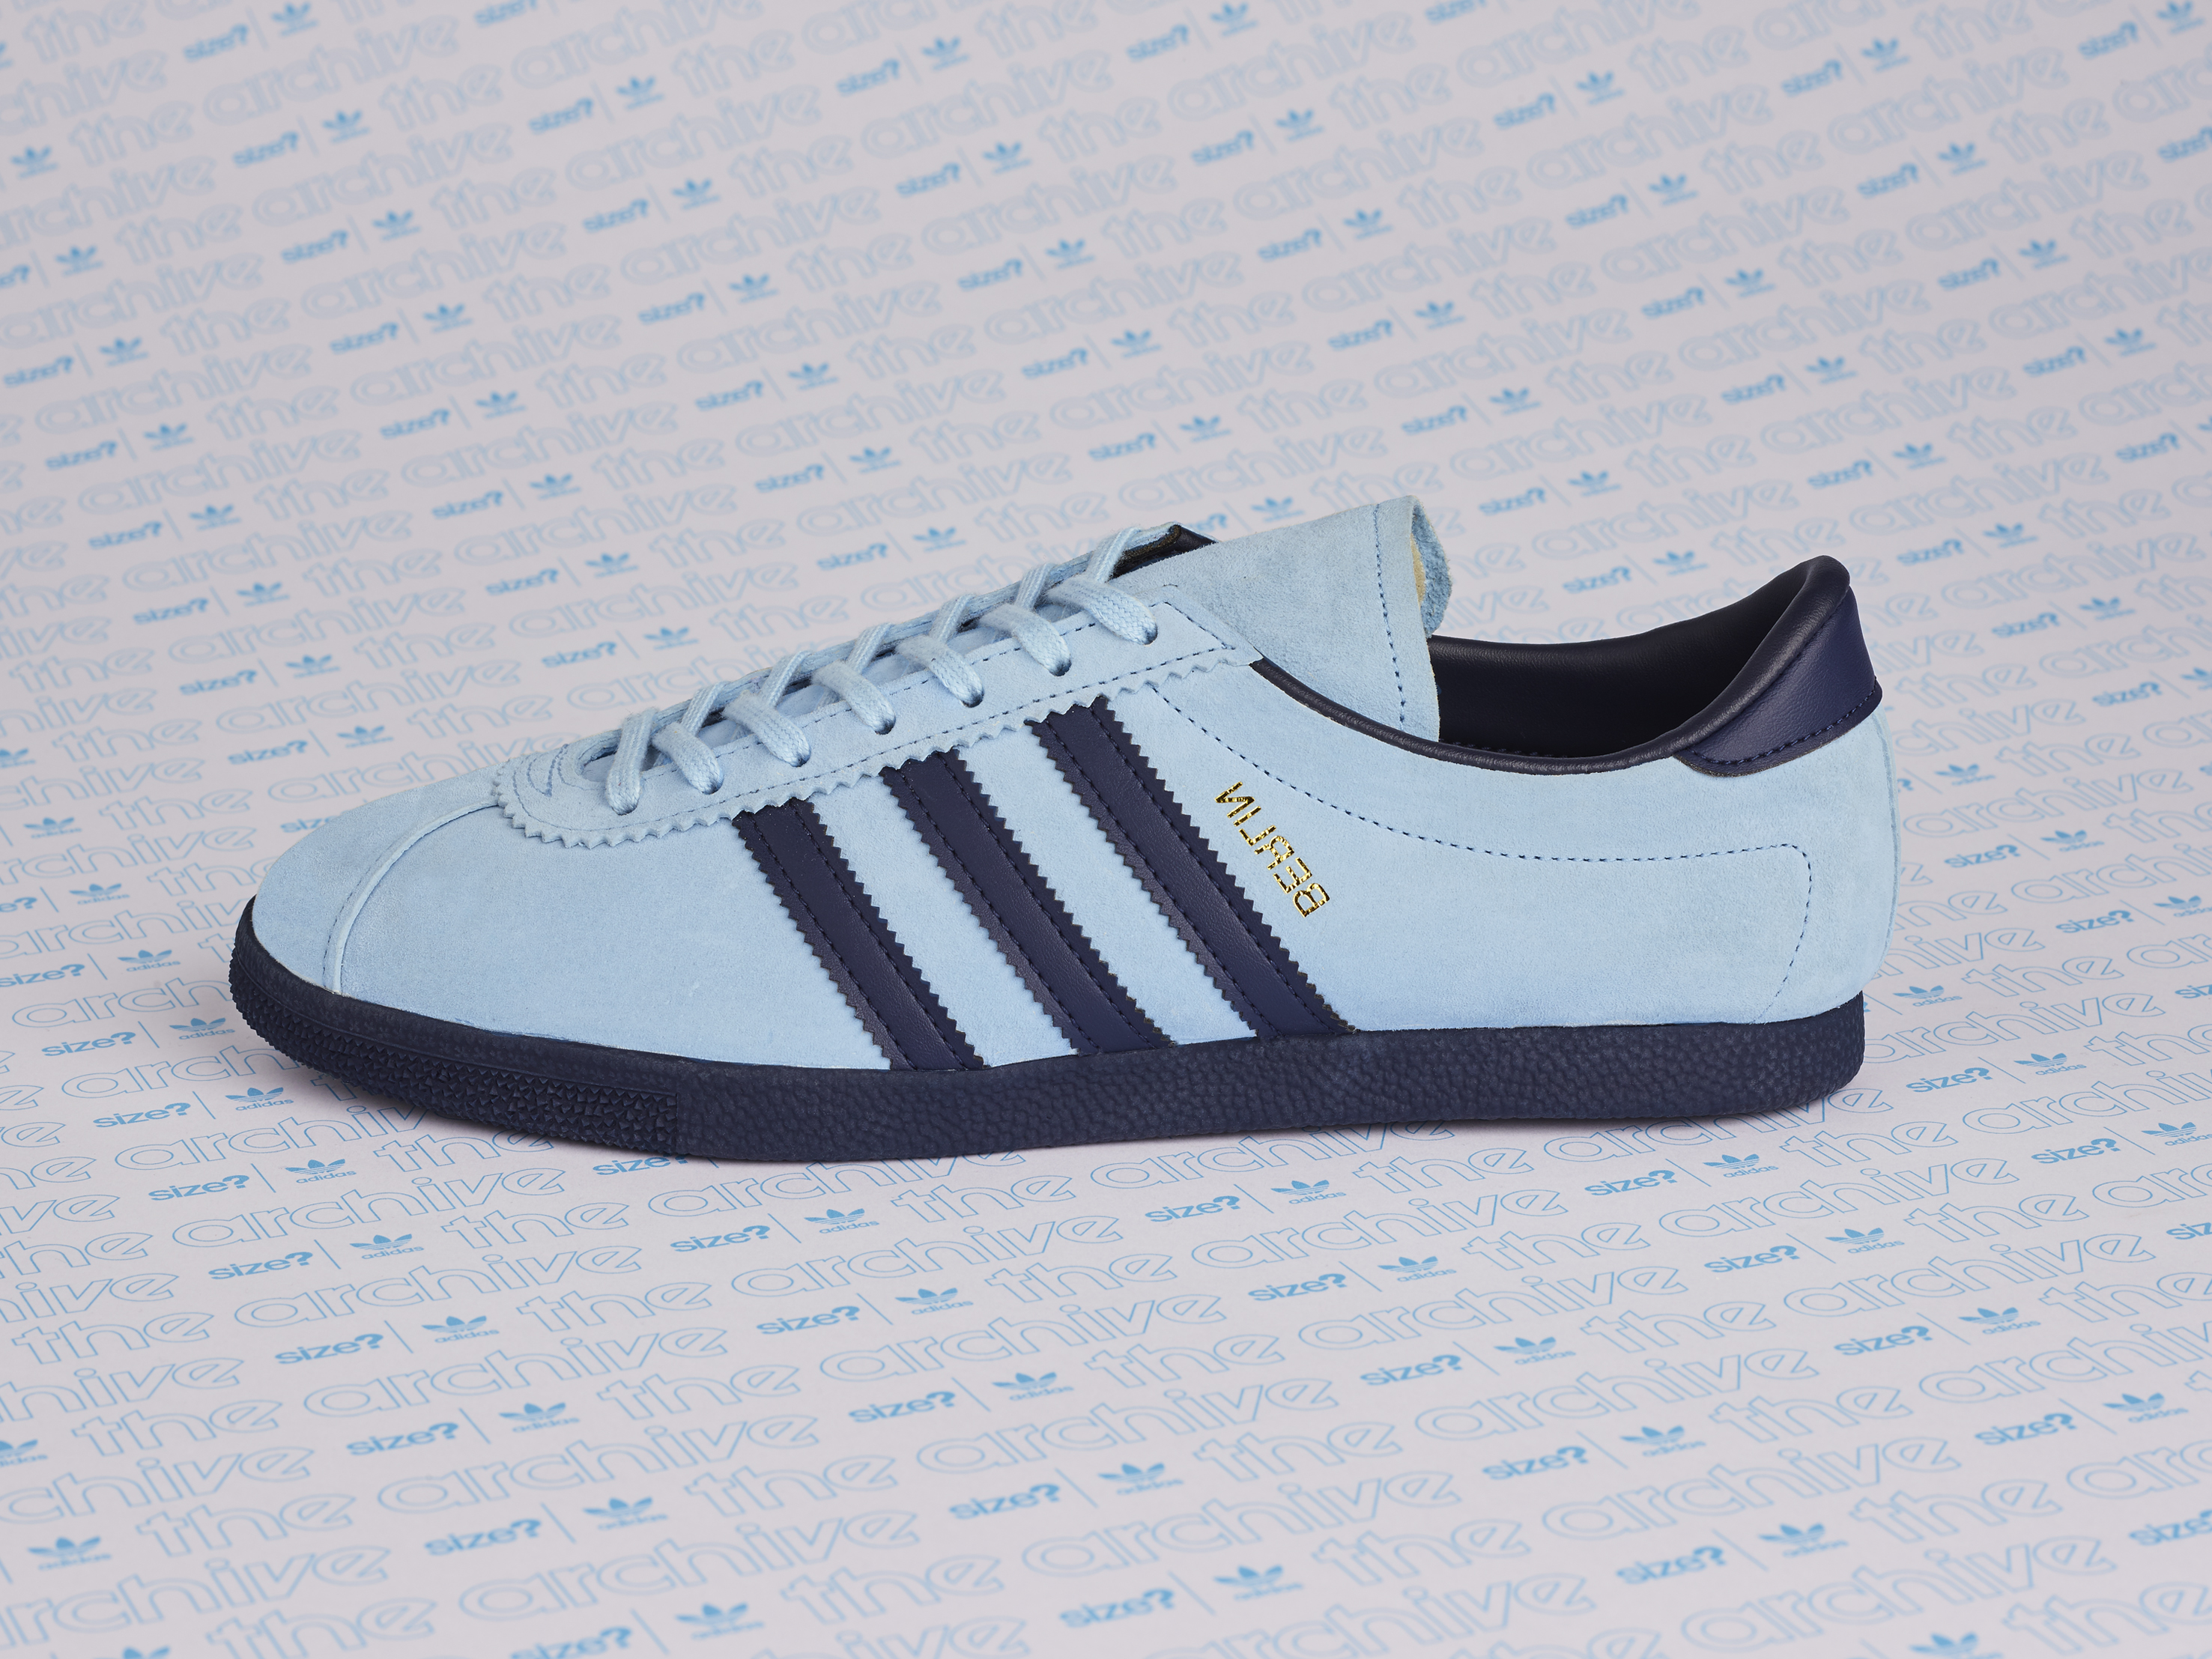 genio Socialista espejo  adidas Originals Archive Berlin OG - size? Exclusive - size? blog